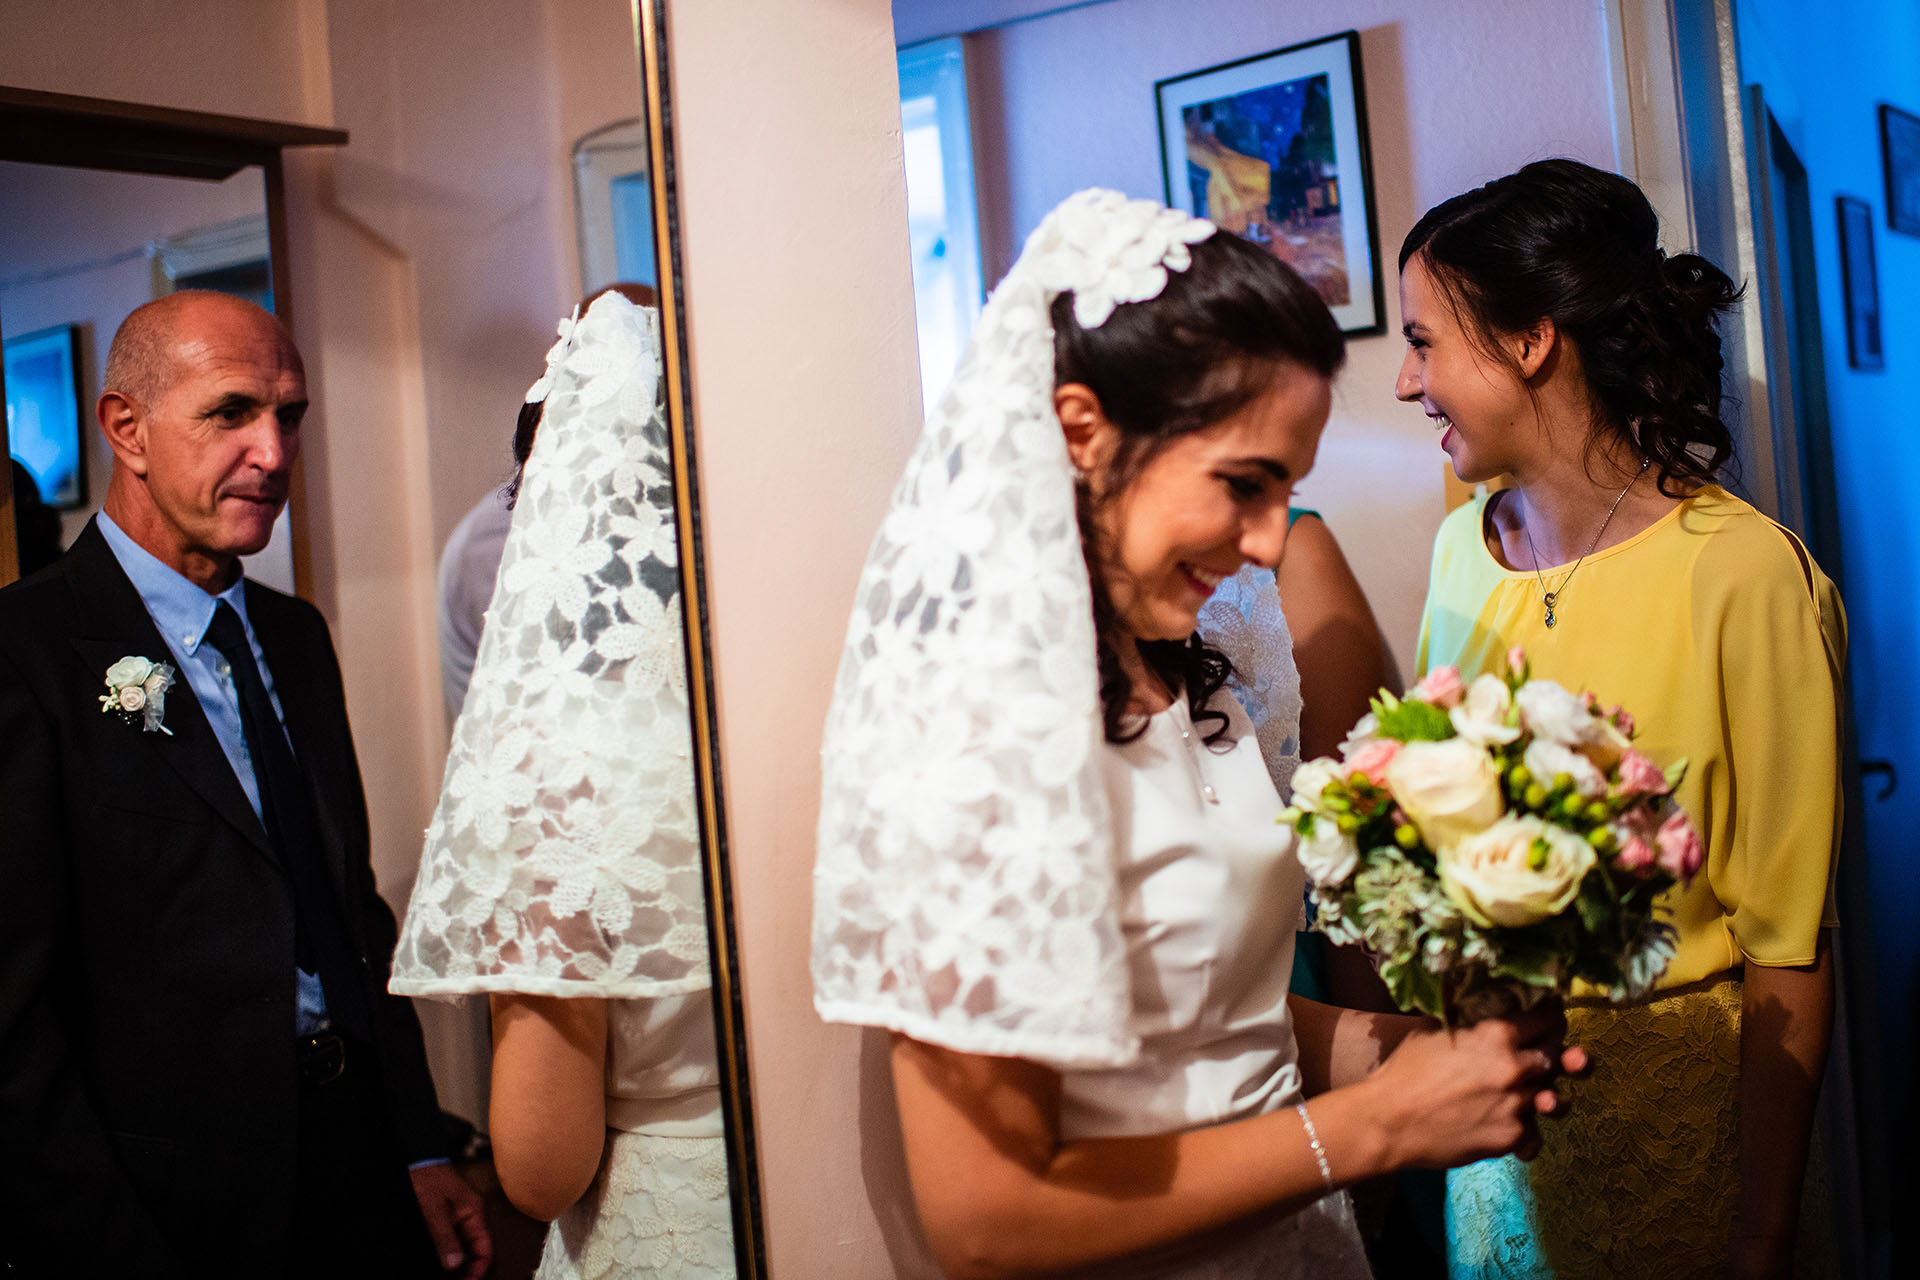 Bulgaria Elopement Bride and Father Picture | As the bride holds her bouquet and smiles, we can see her father in the reflection